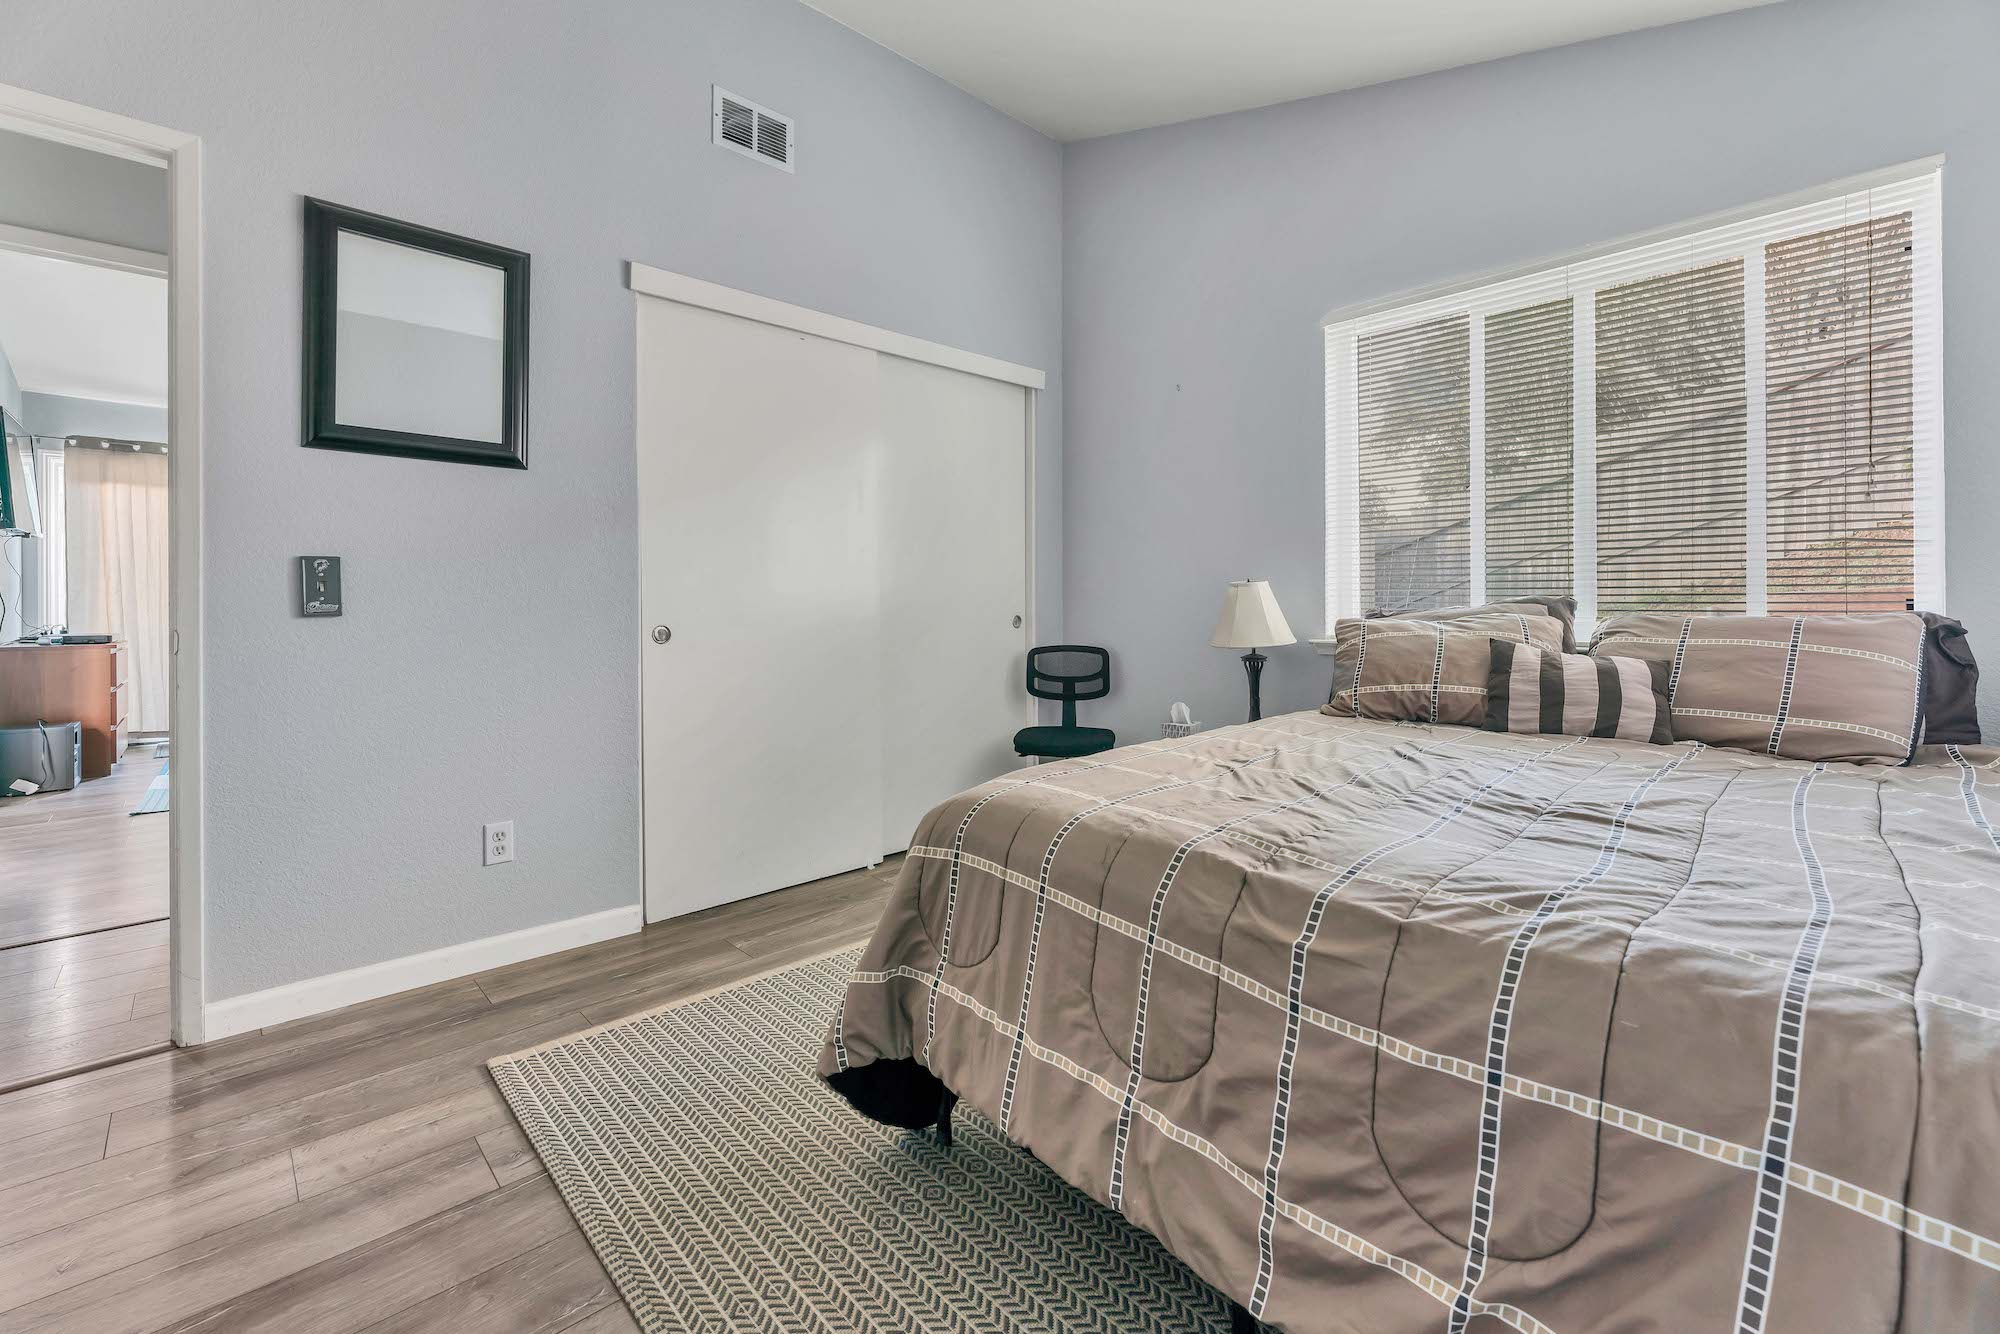 Second bedroom of home at 7121 Heather Tree Dr, Sacramento Ca